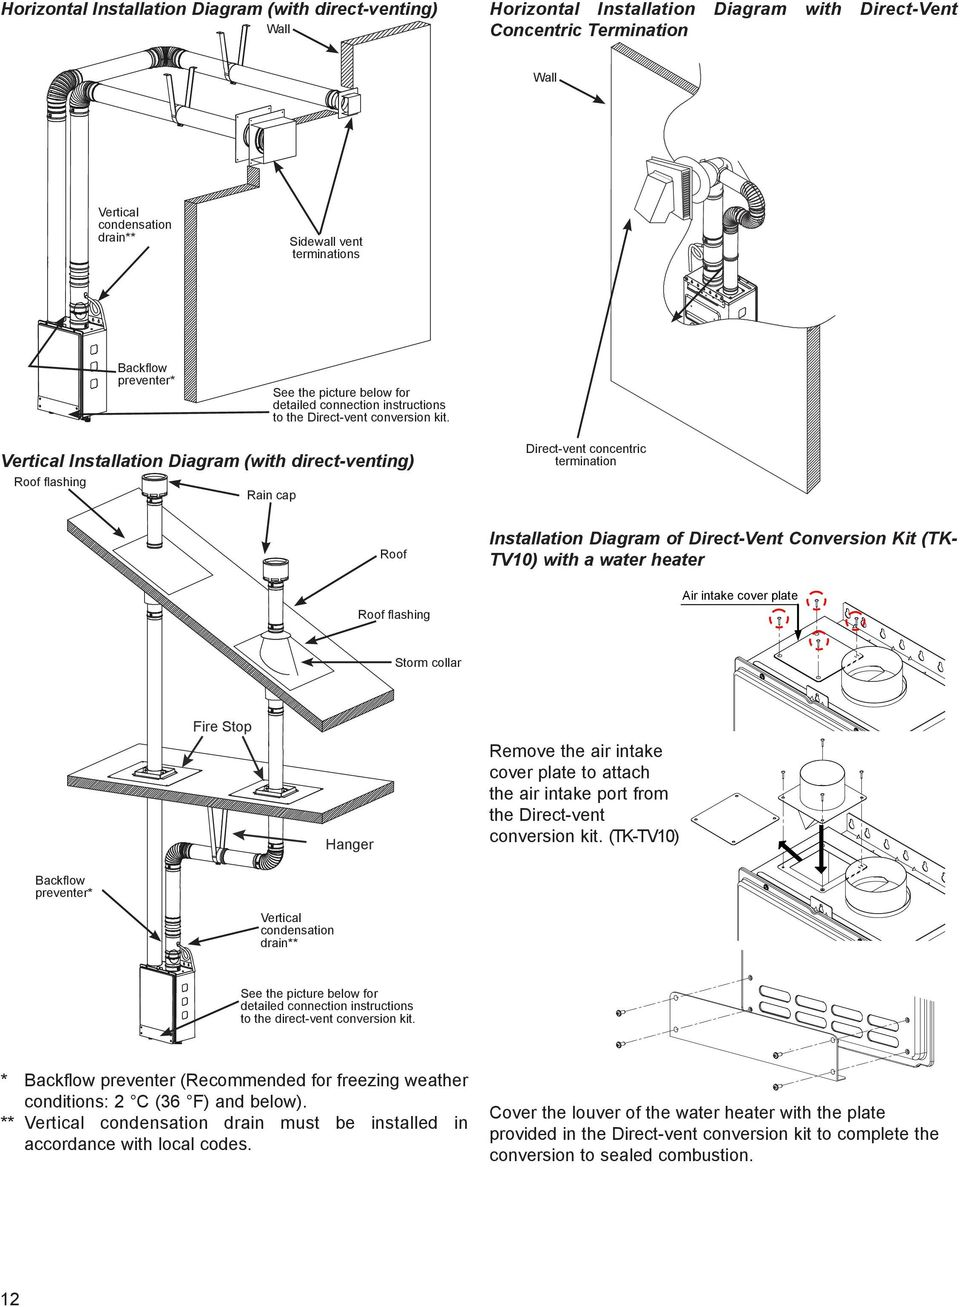 On-Demand Water Heater Installation Manual and Owner s Guide - PDF